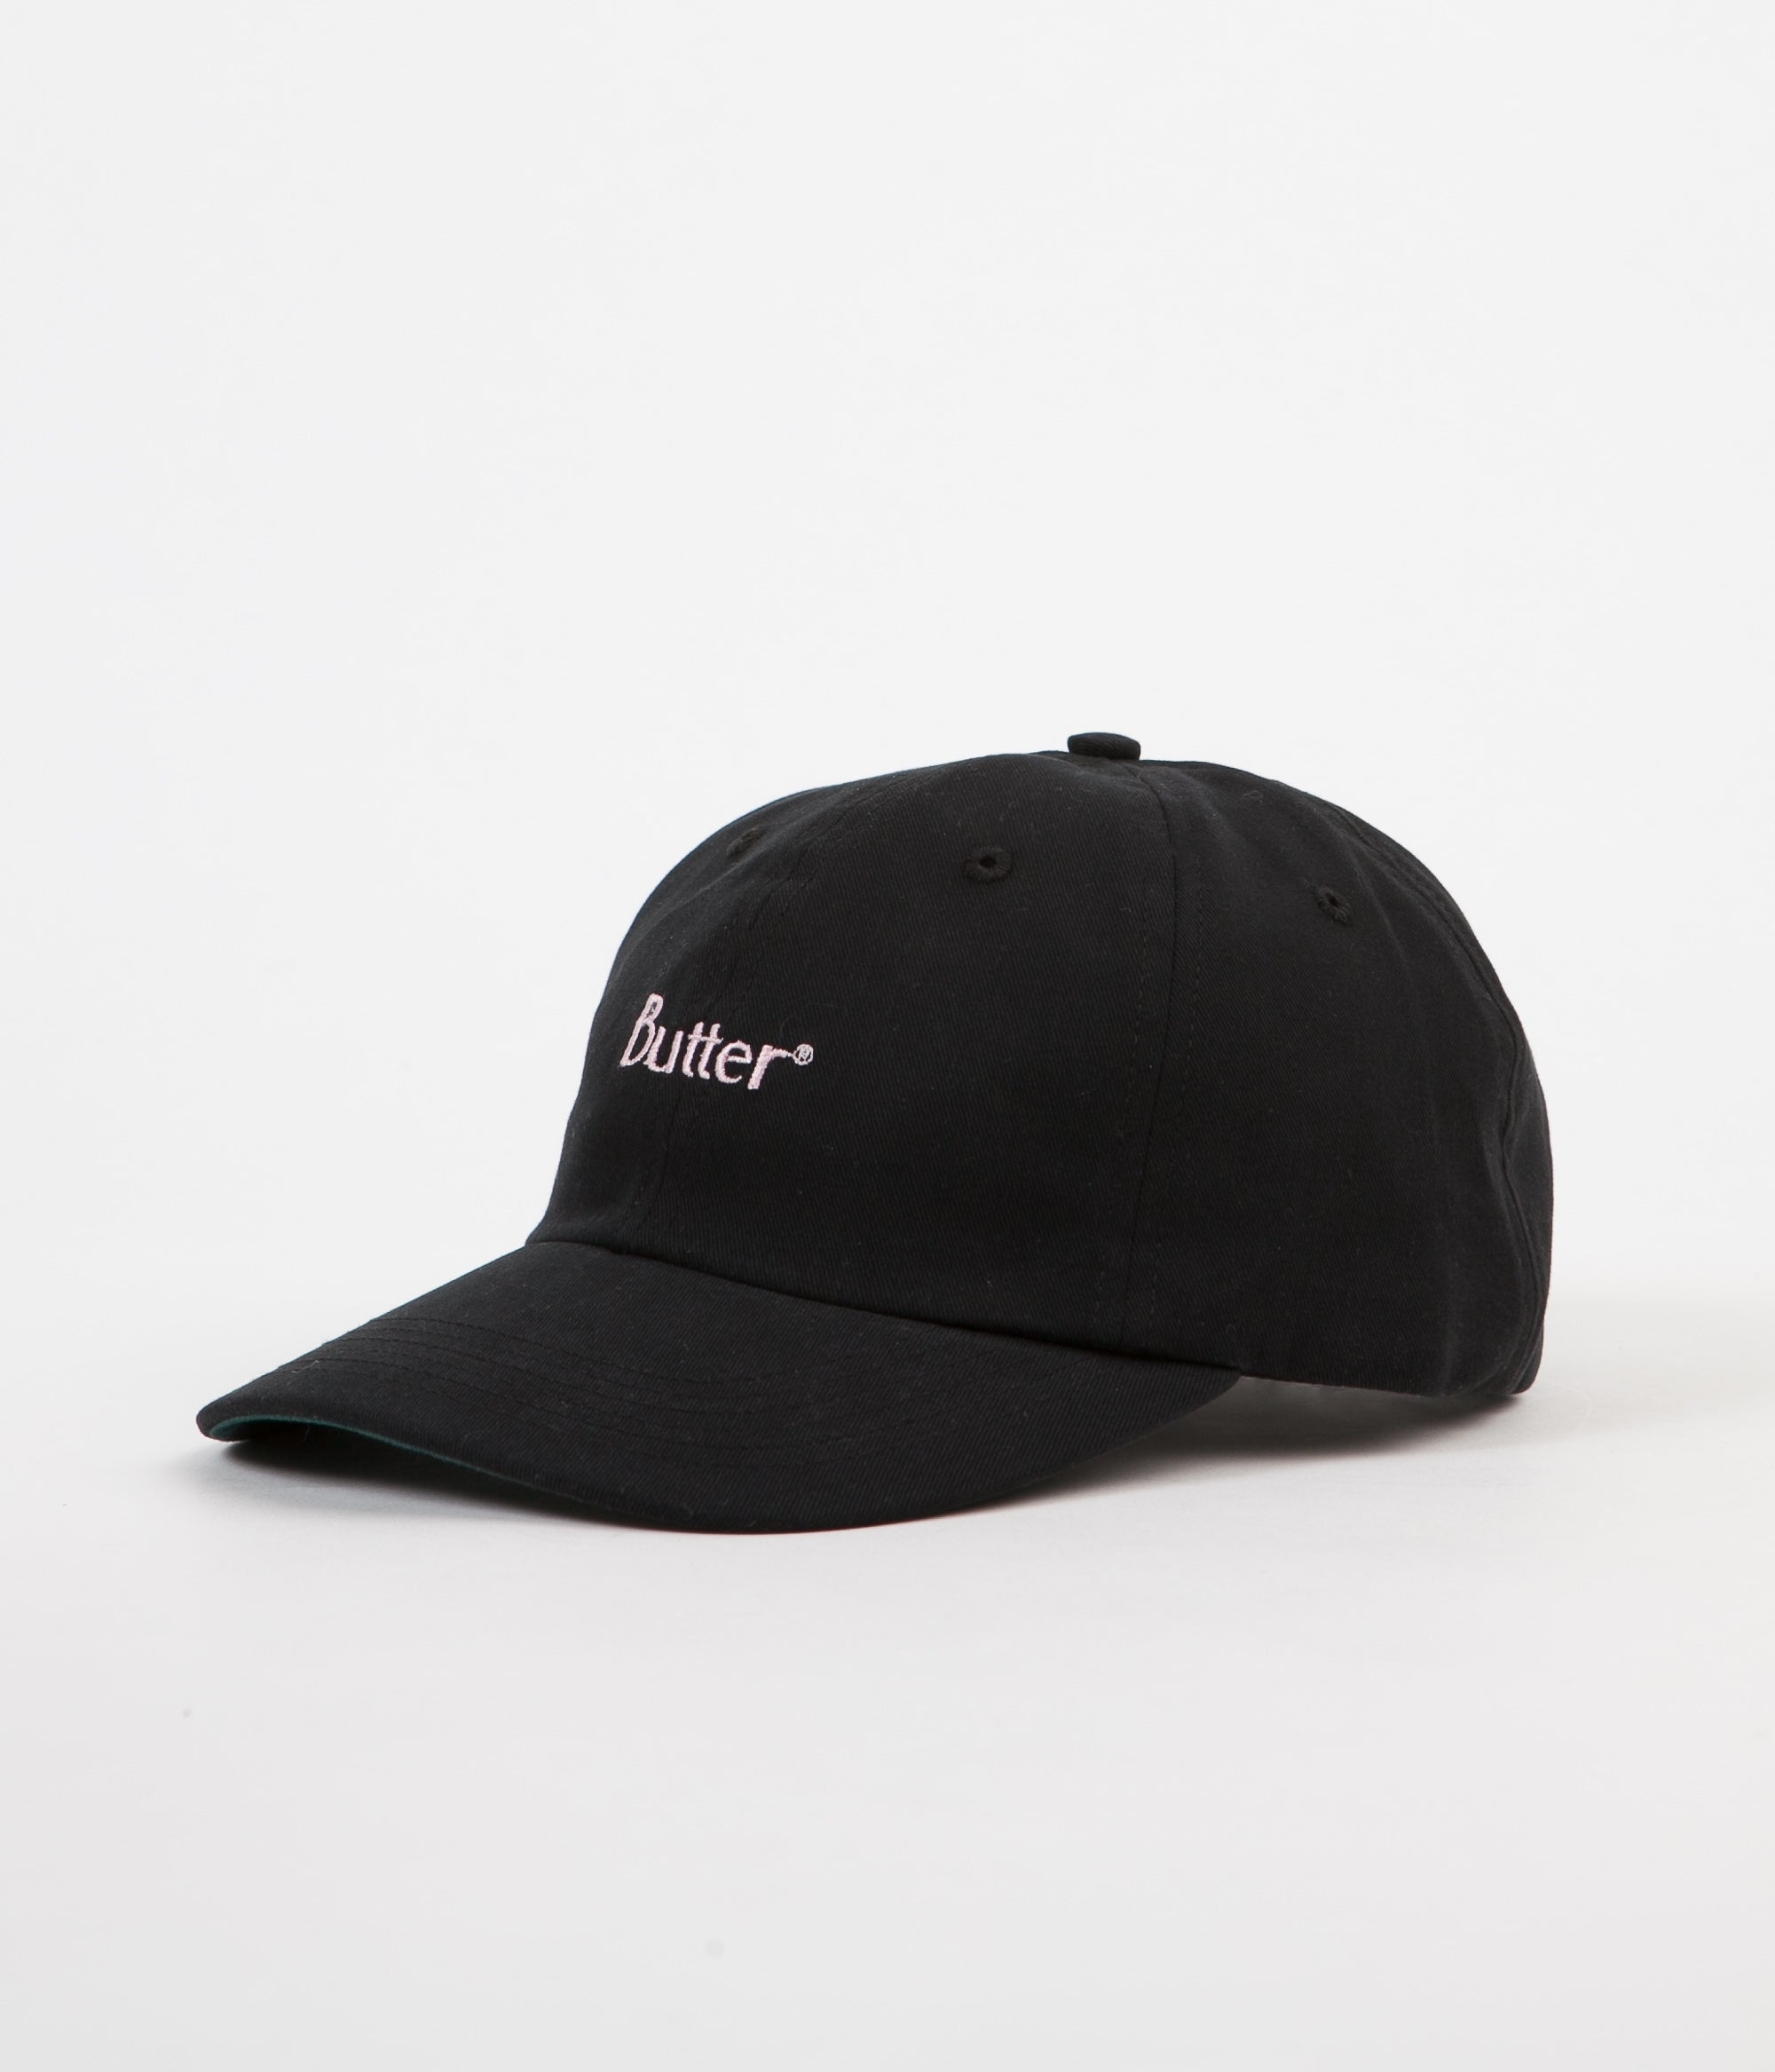 Butter Goods x Flatspot 6 Panel Cap - Black